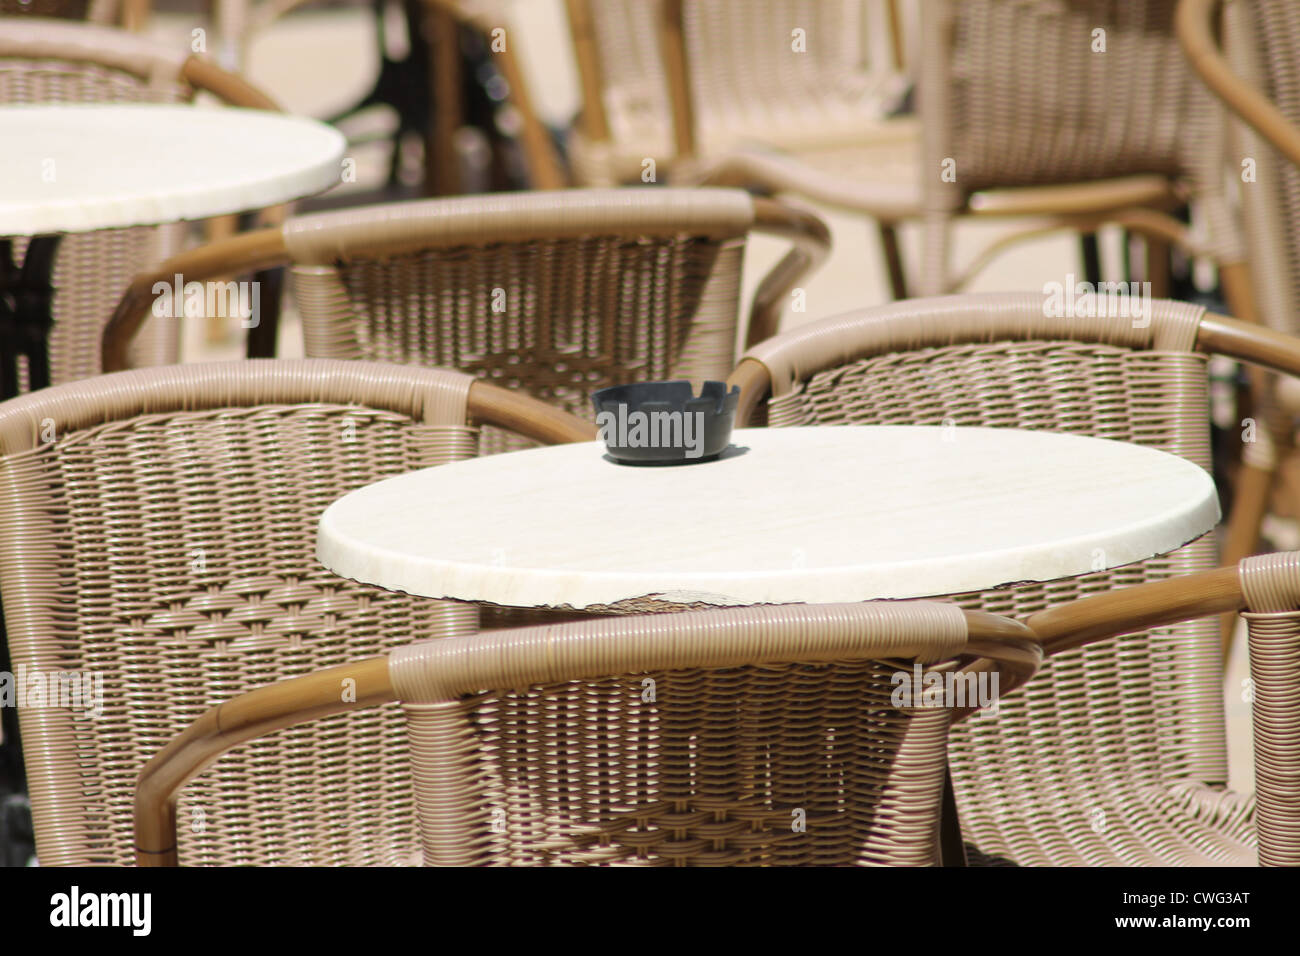 Ashtray on restaurant tables with wicker chairs outdoors. - Stock Image